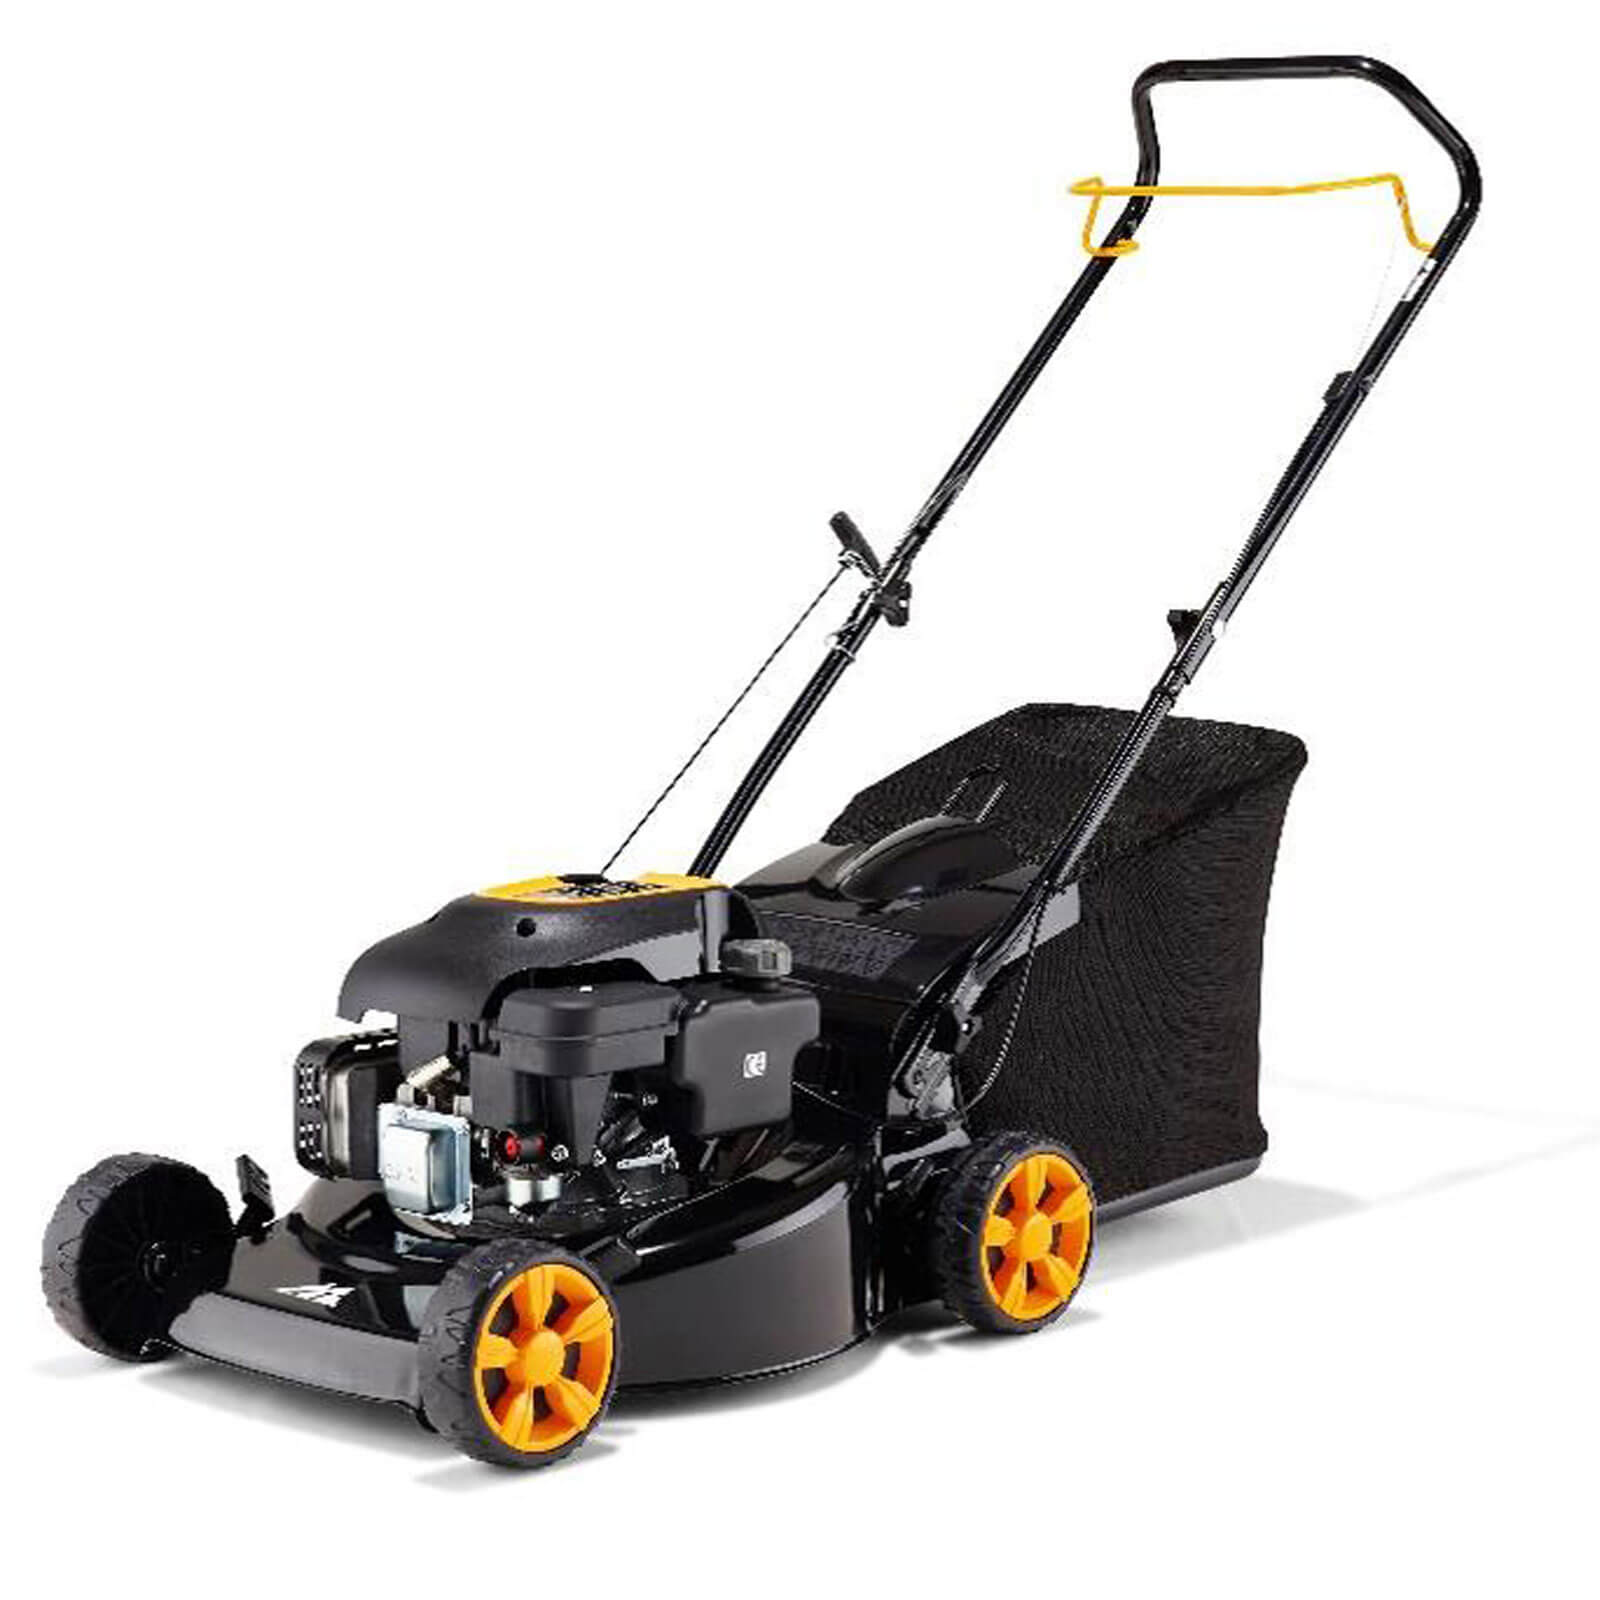 Image of McCulloch M40-110 Push Petrol Rotary Lawnmower 400mm